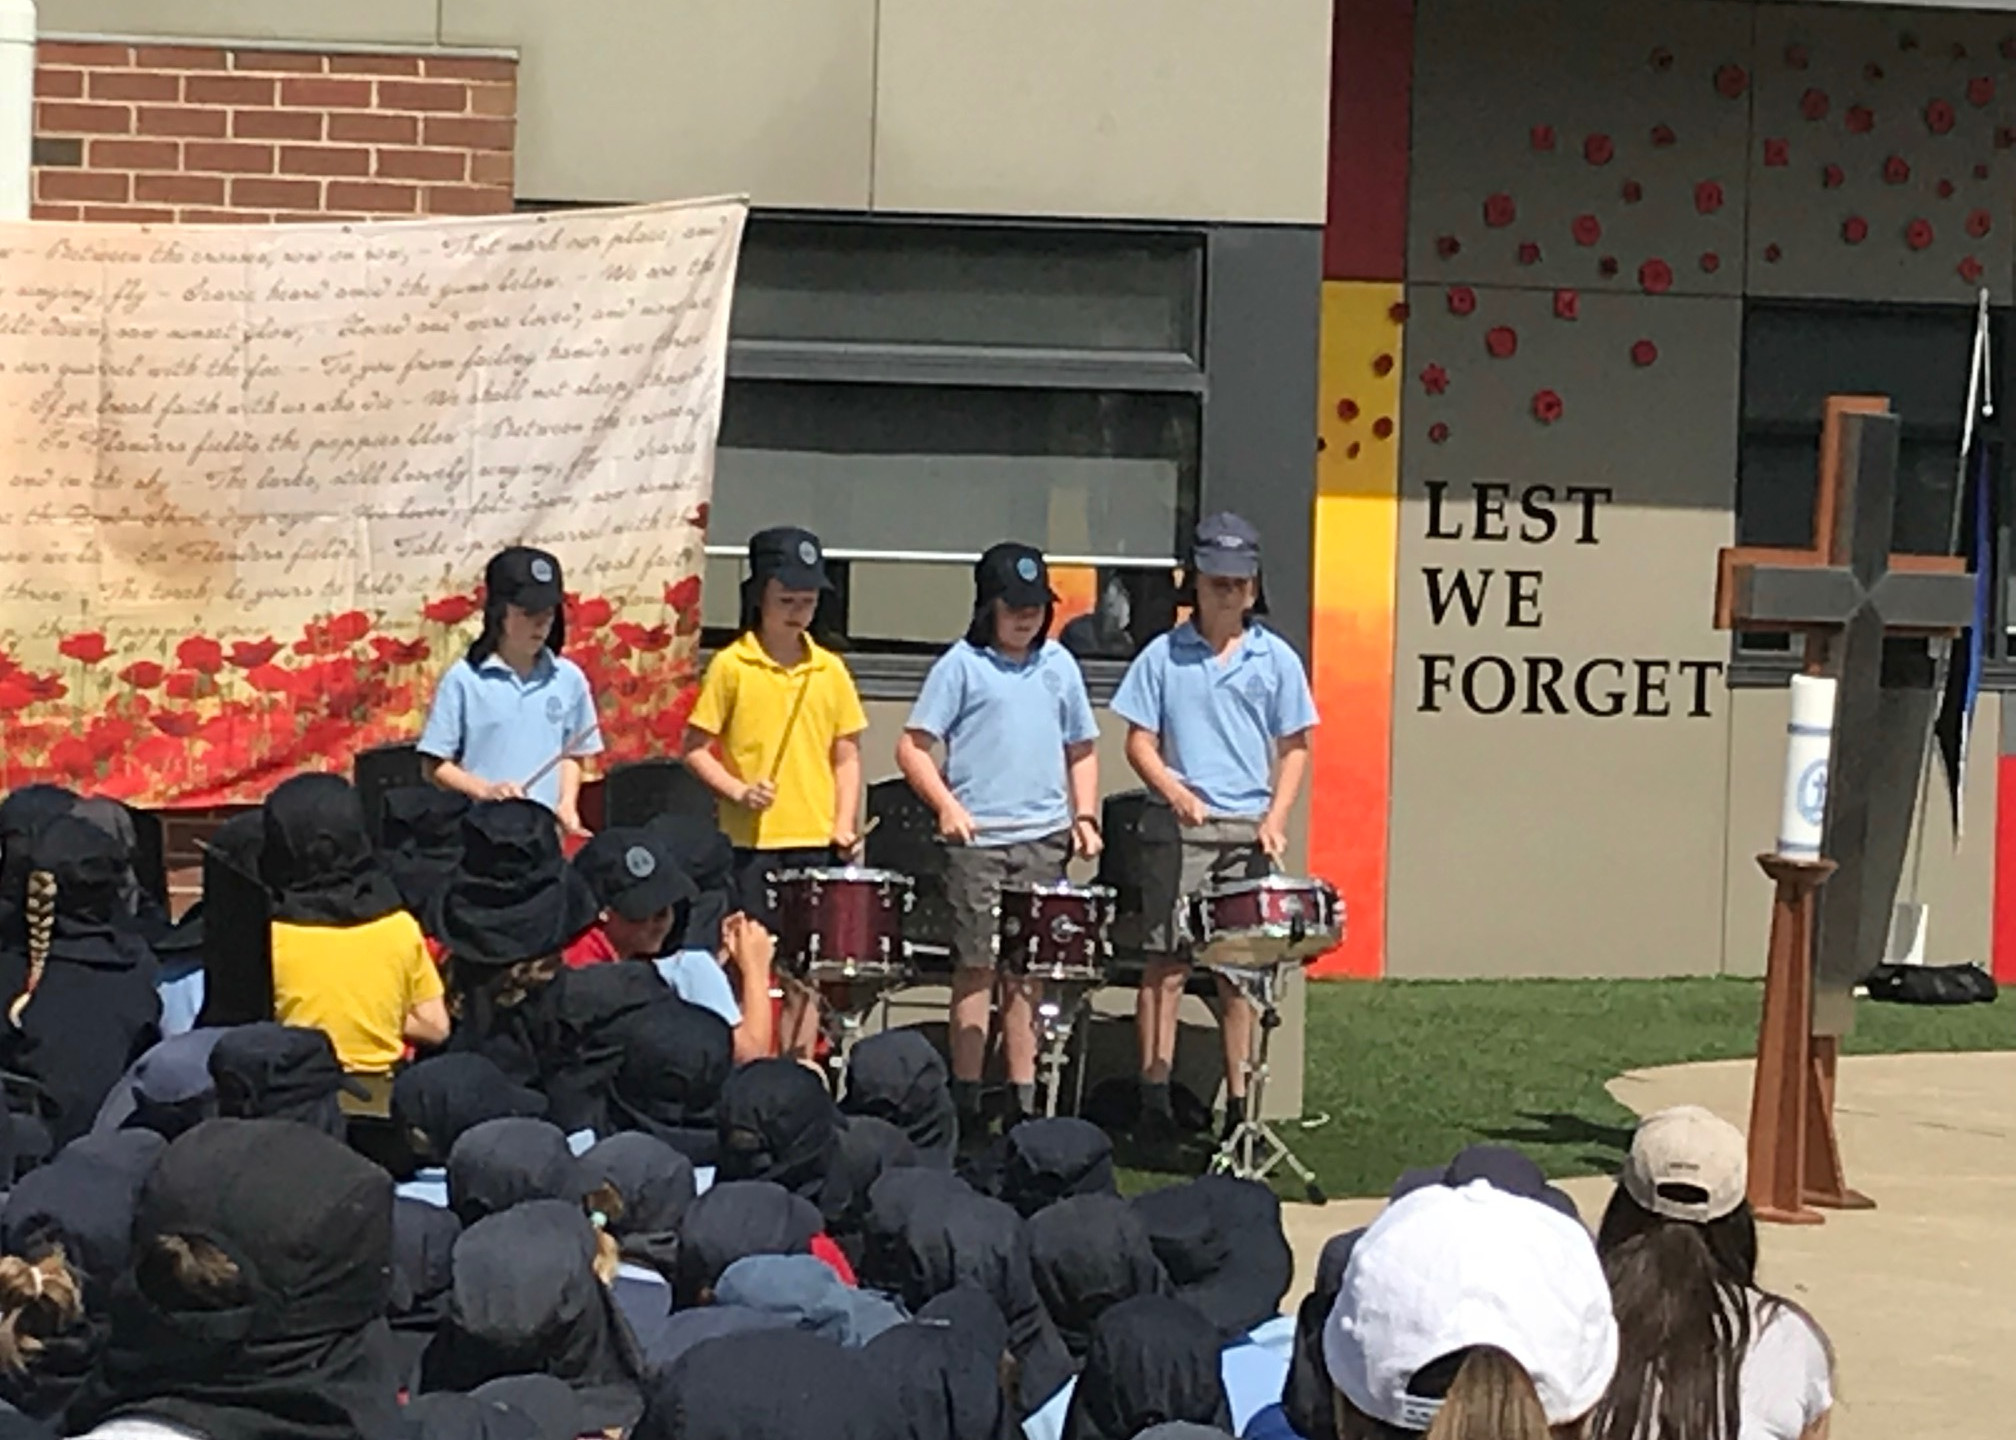 Remembrance - Drummers